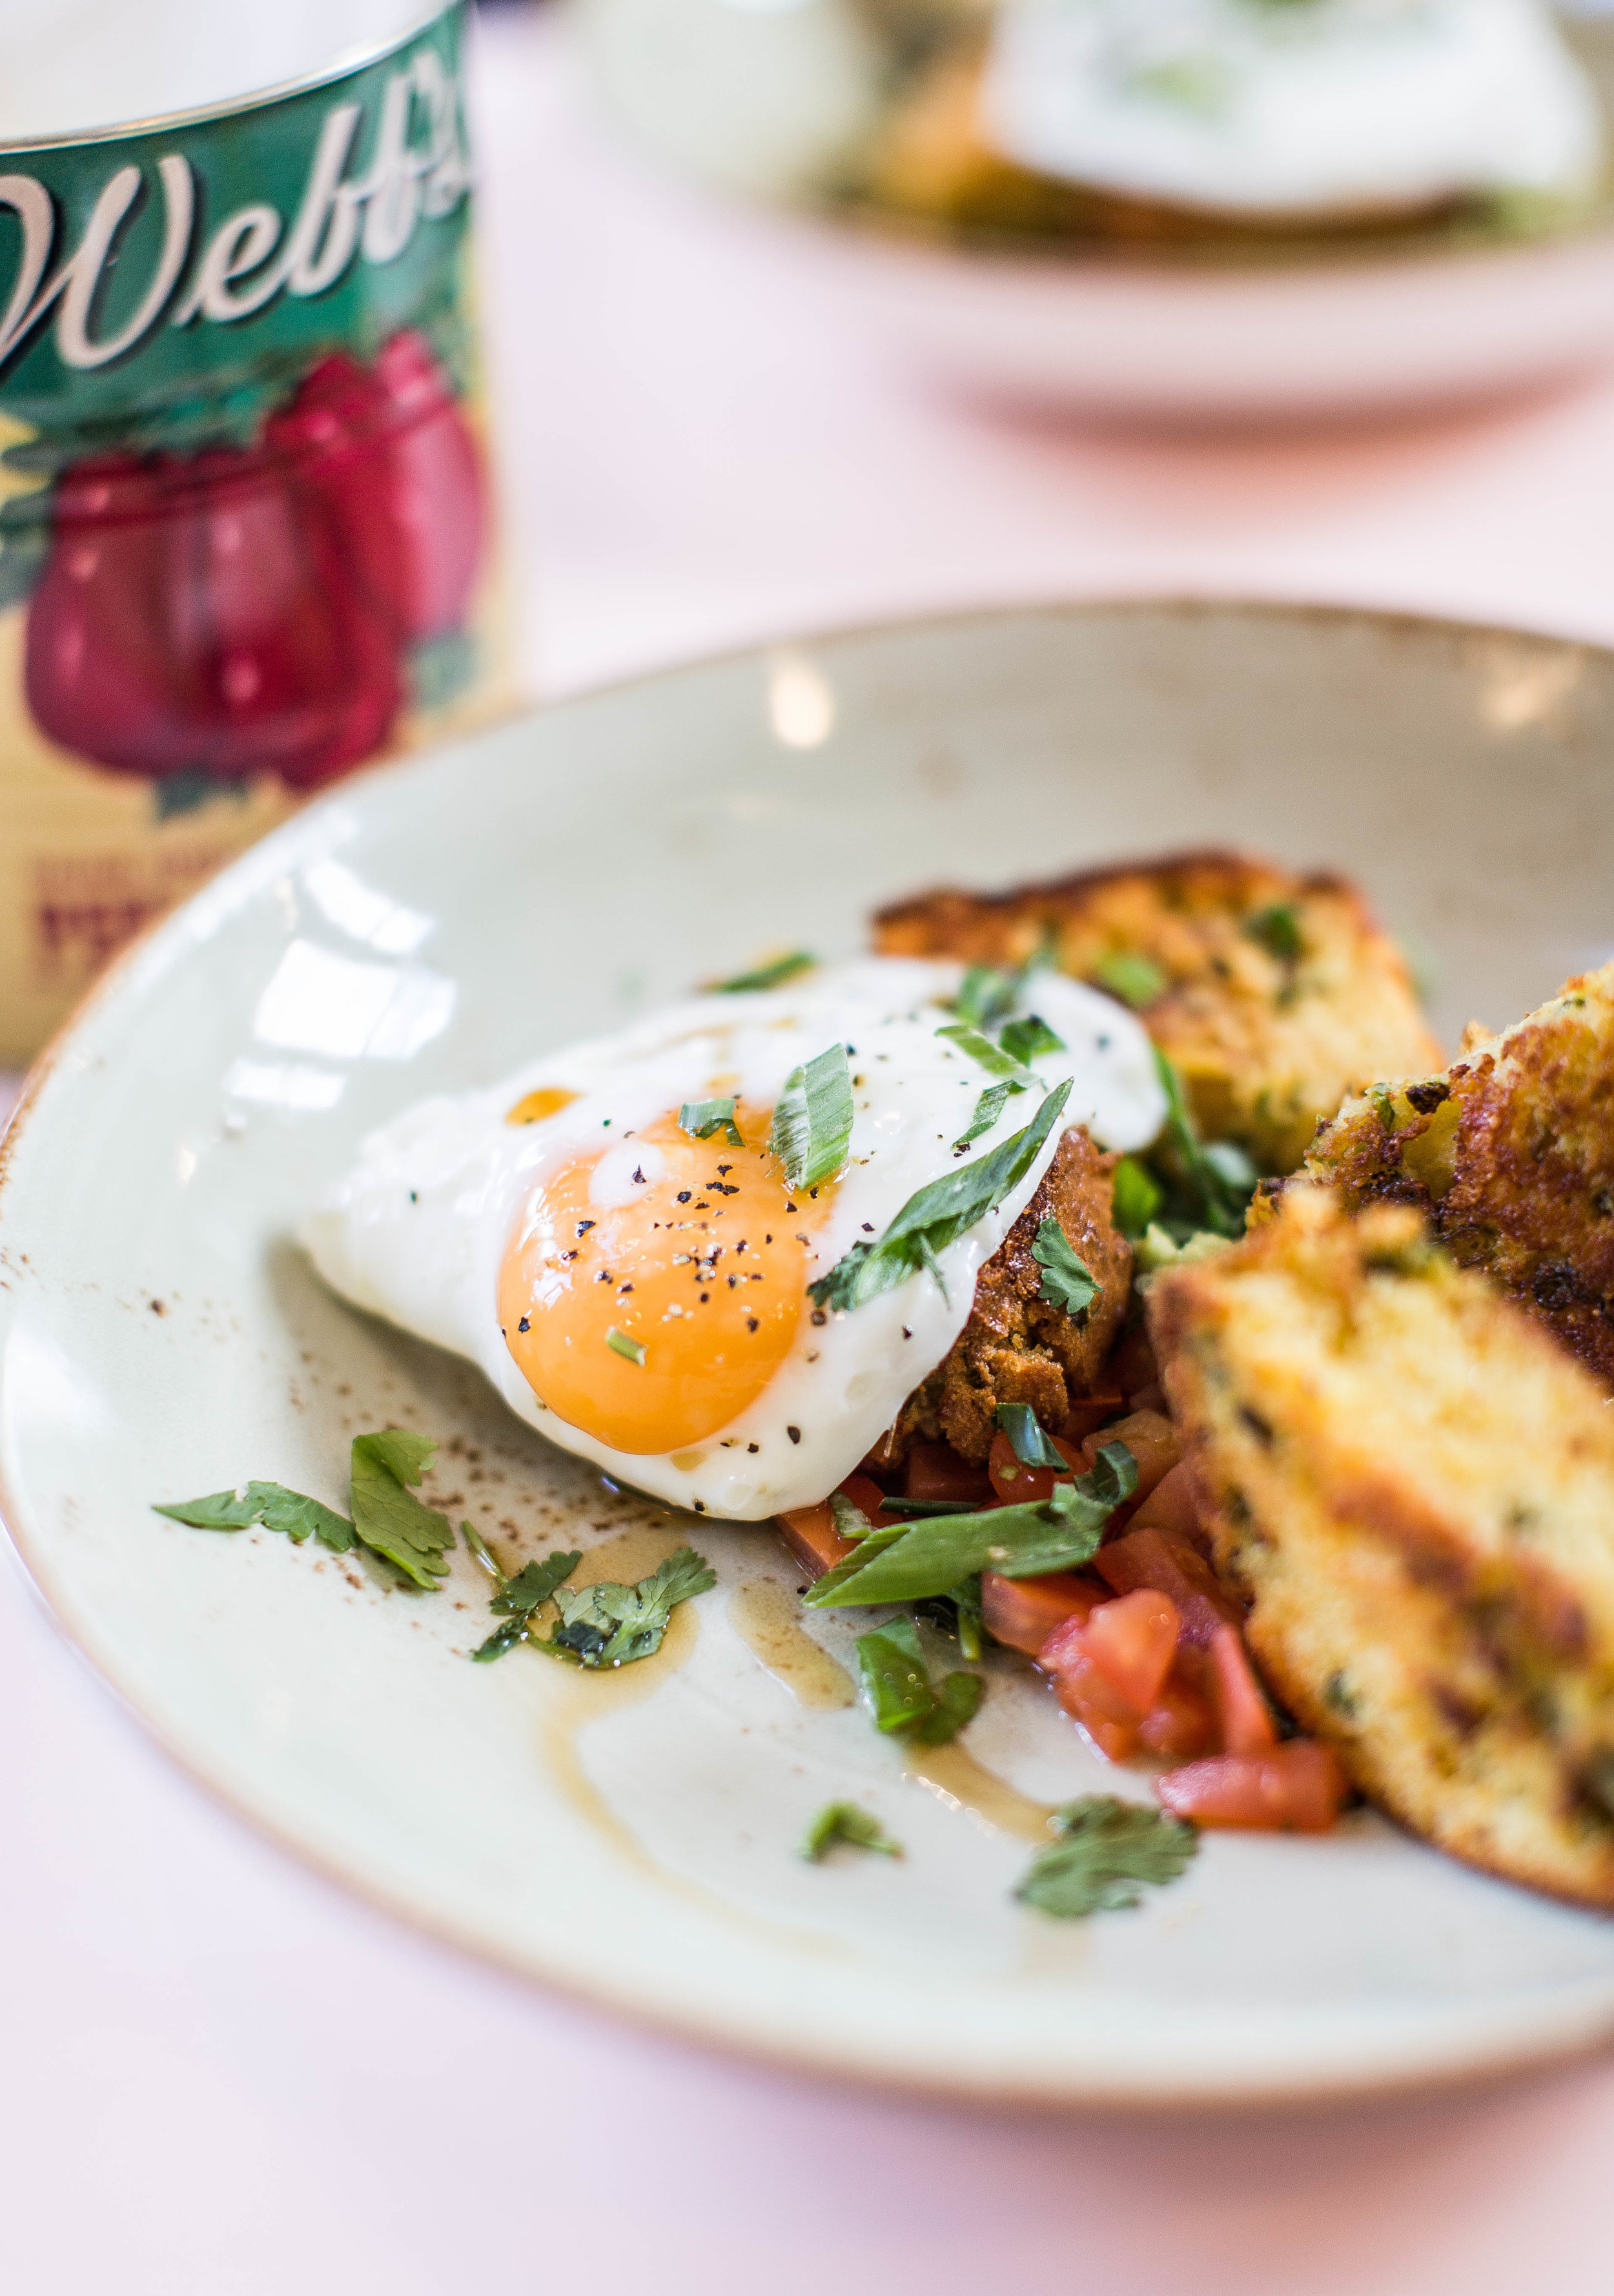 ALL DAY BRUNCH - We're so proud of our breakfast options that we choose to offer them all day from open to close. Whether our delicious pancakes tickle your fancy, or you've got a craving for smashed avocado on toast, we've got you covered.